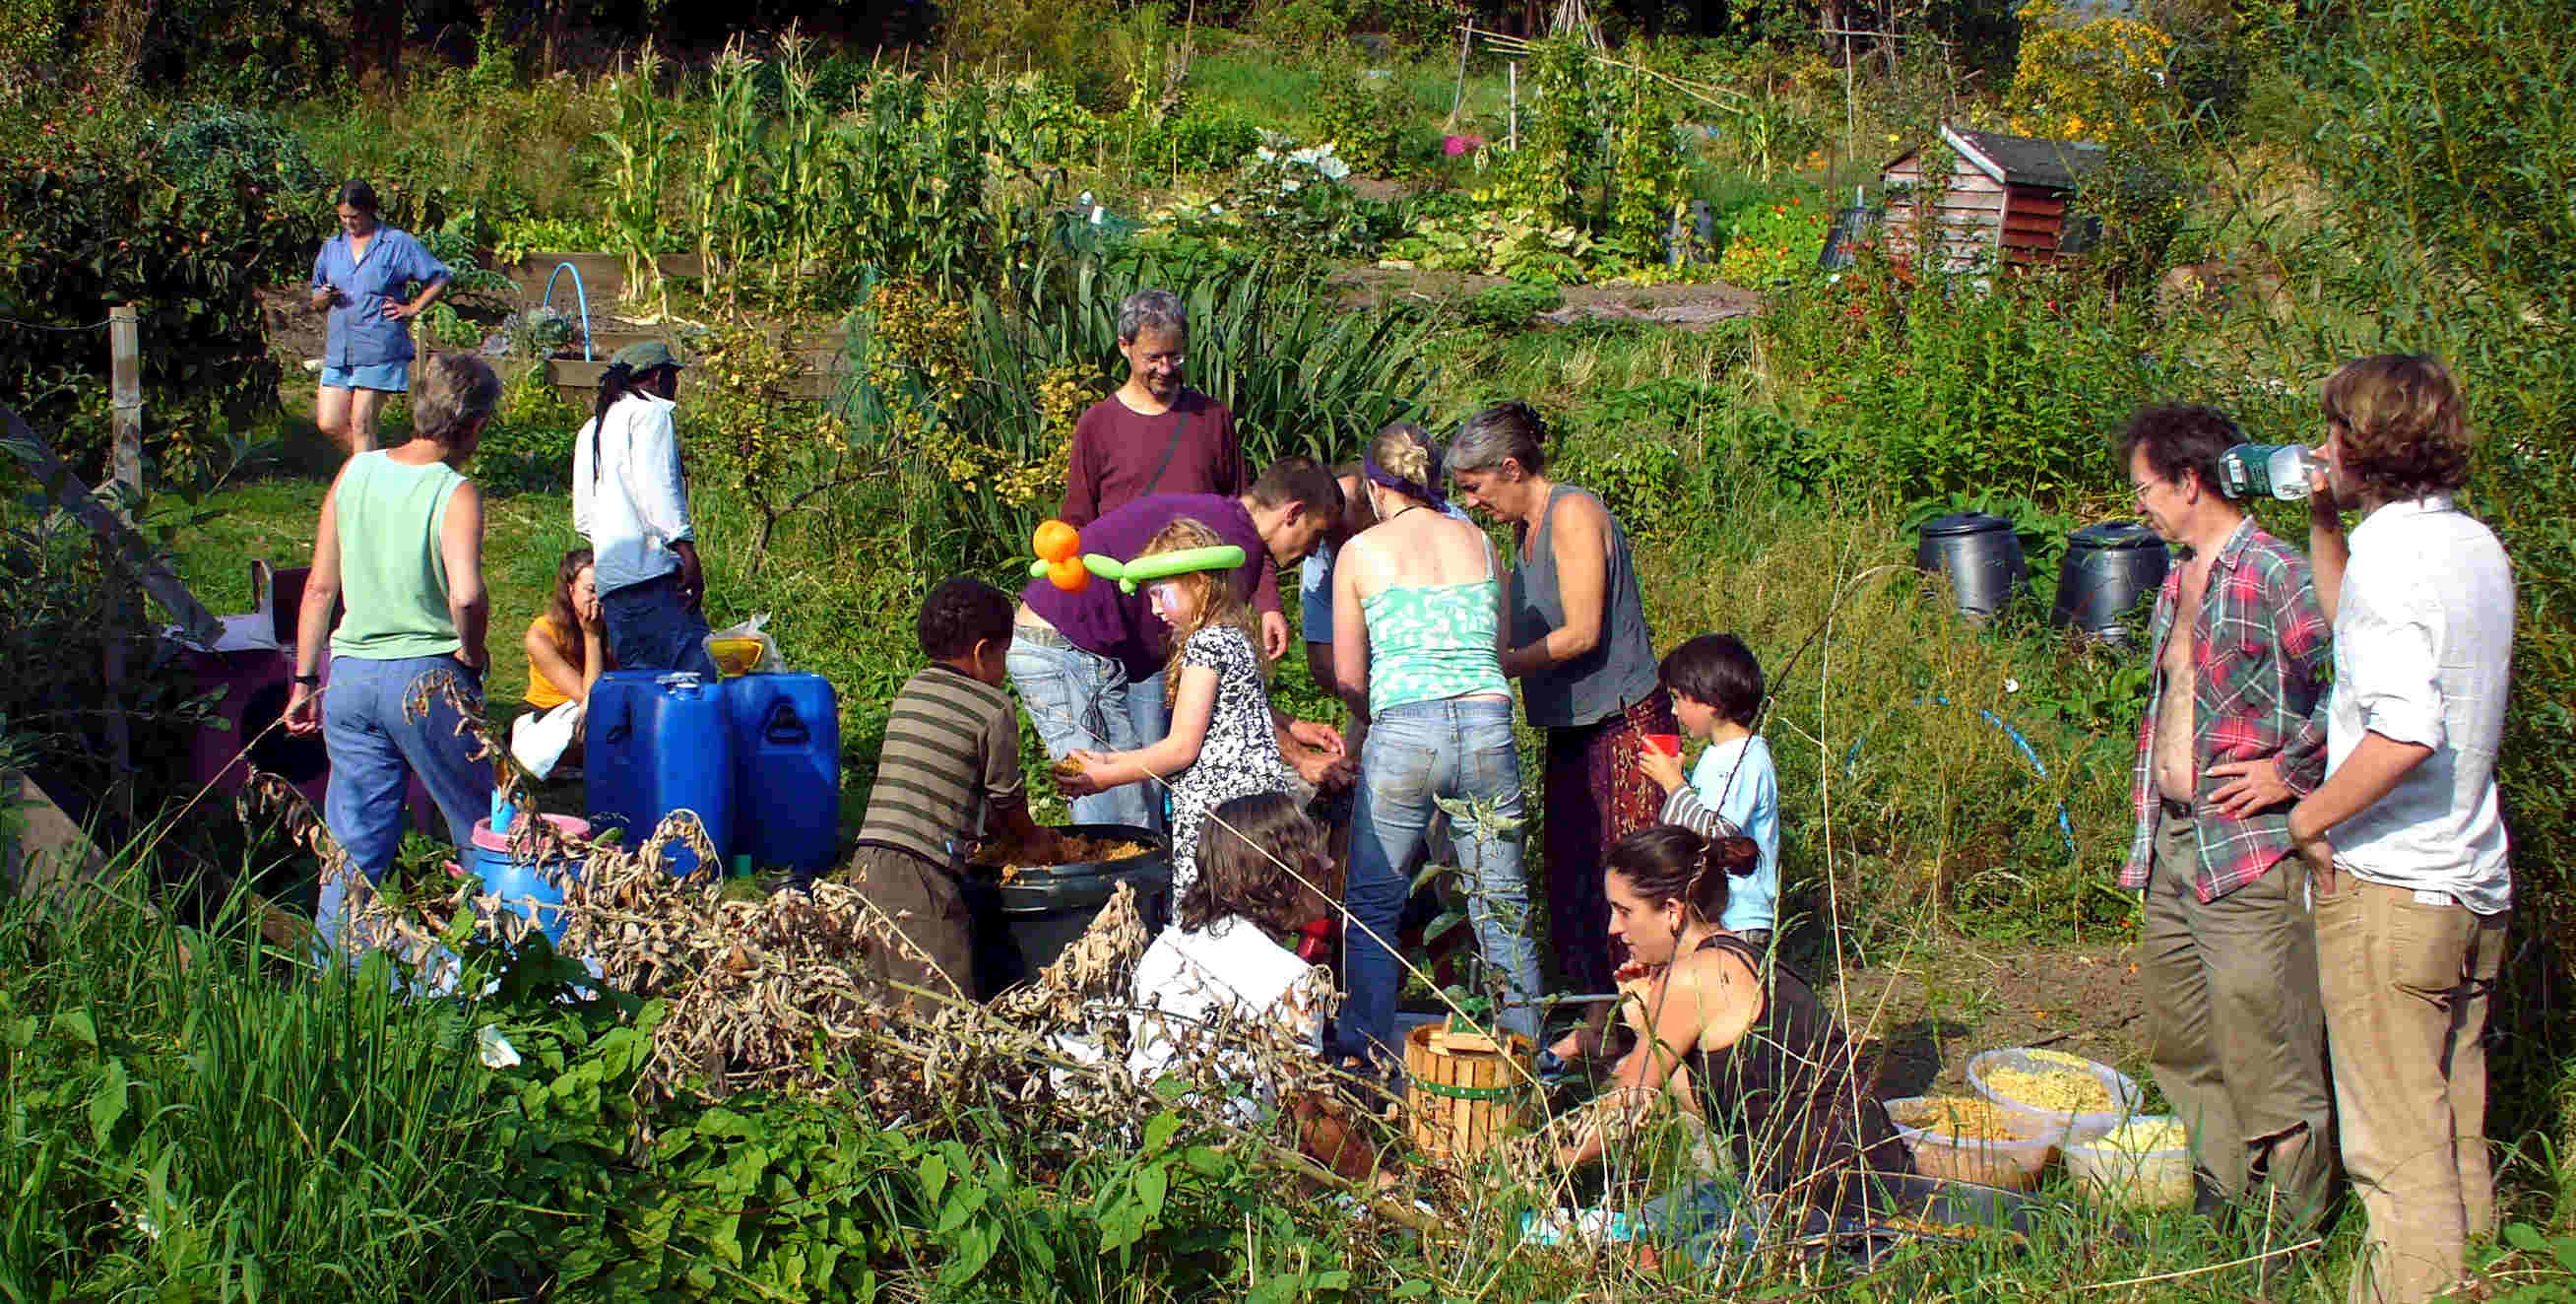 Group on allotment